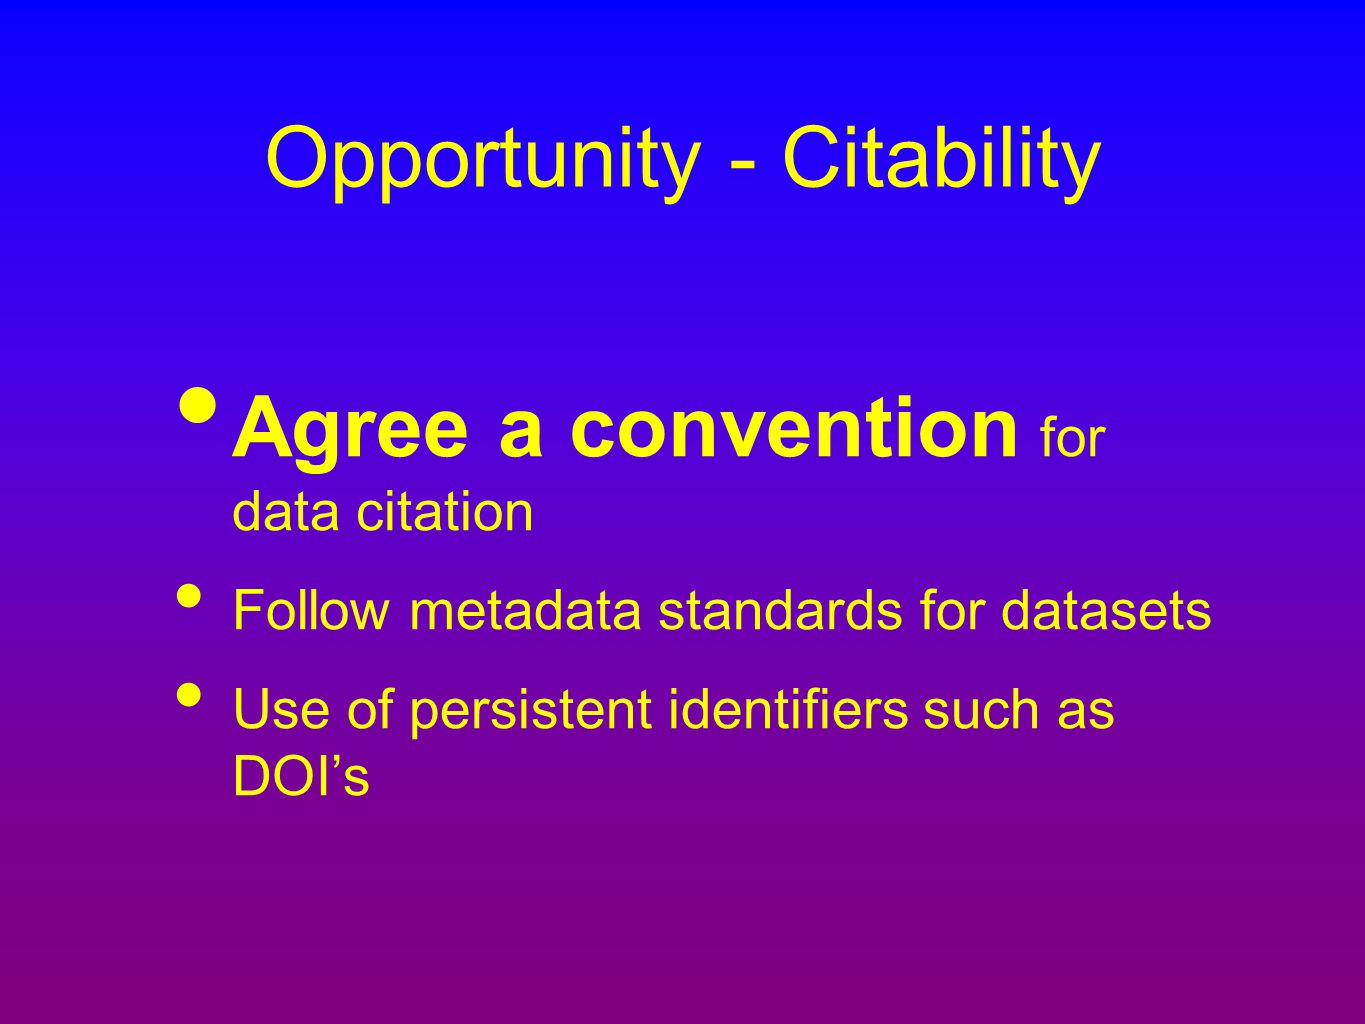 Opportunity - Citability Agree a convention for data citation Follow metadata standards for datasets Use of persistent identifiers such as DOI's